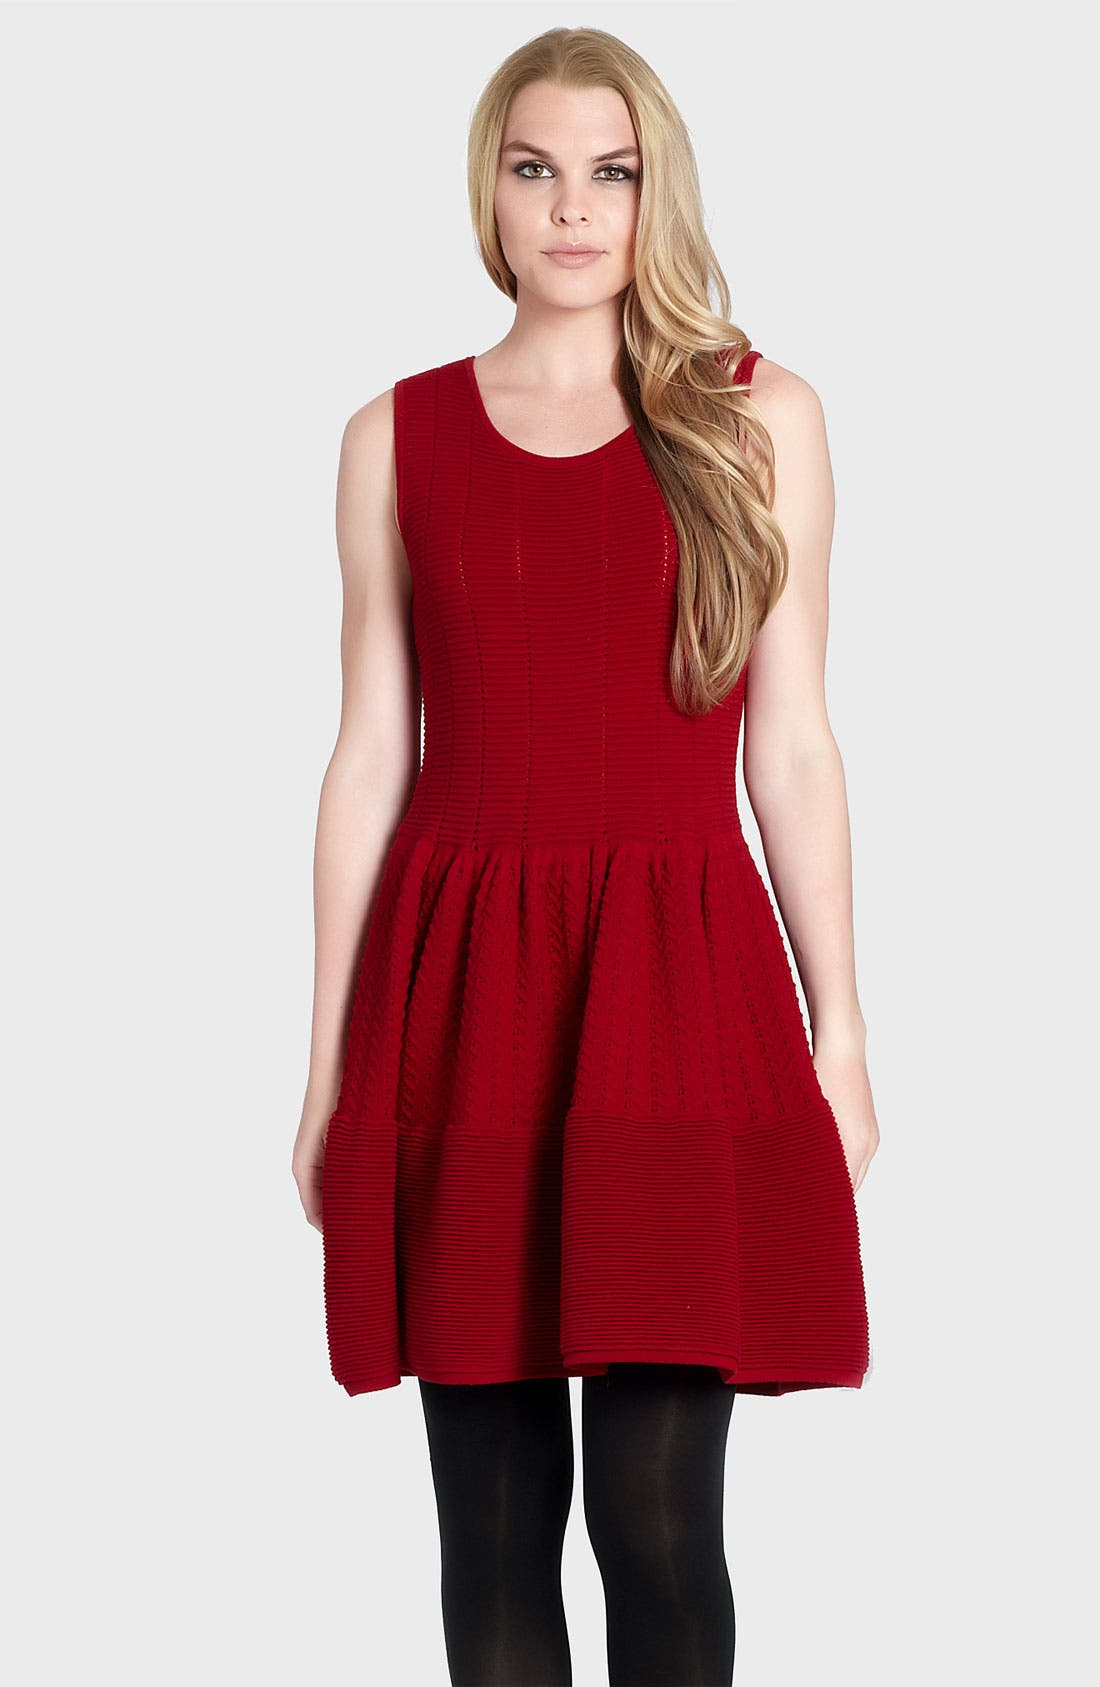 Main Image - Cynthia Steffe 'Carly' Pointelle Wool Blend Sweater Dress